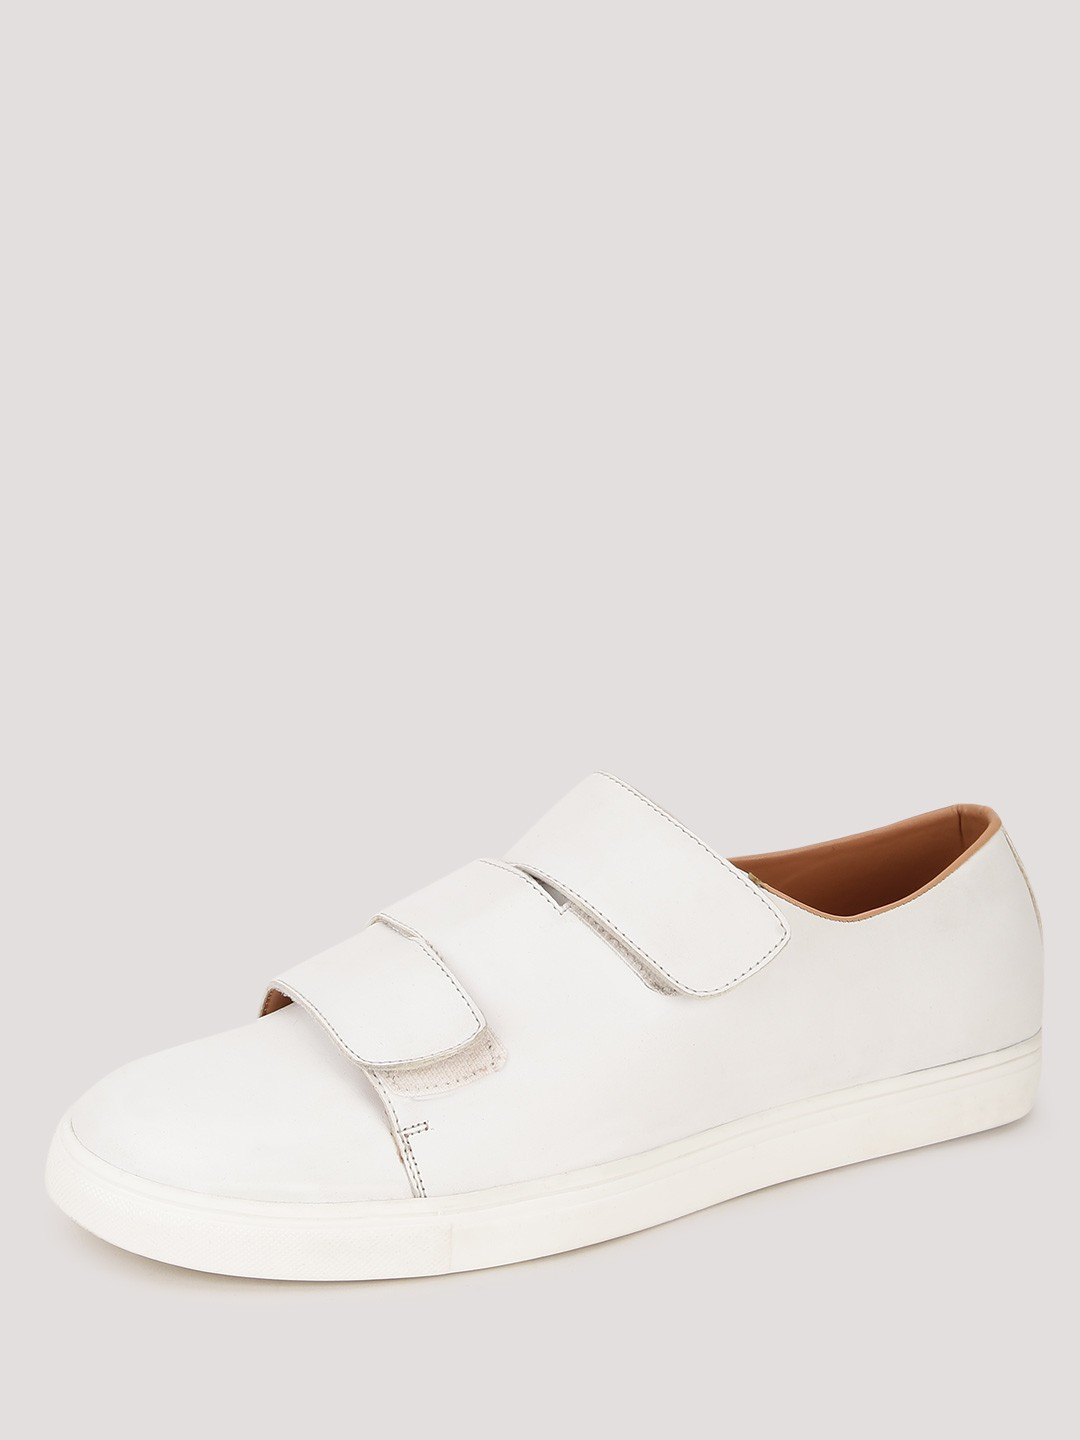 Shoes With Straps Mens India